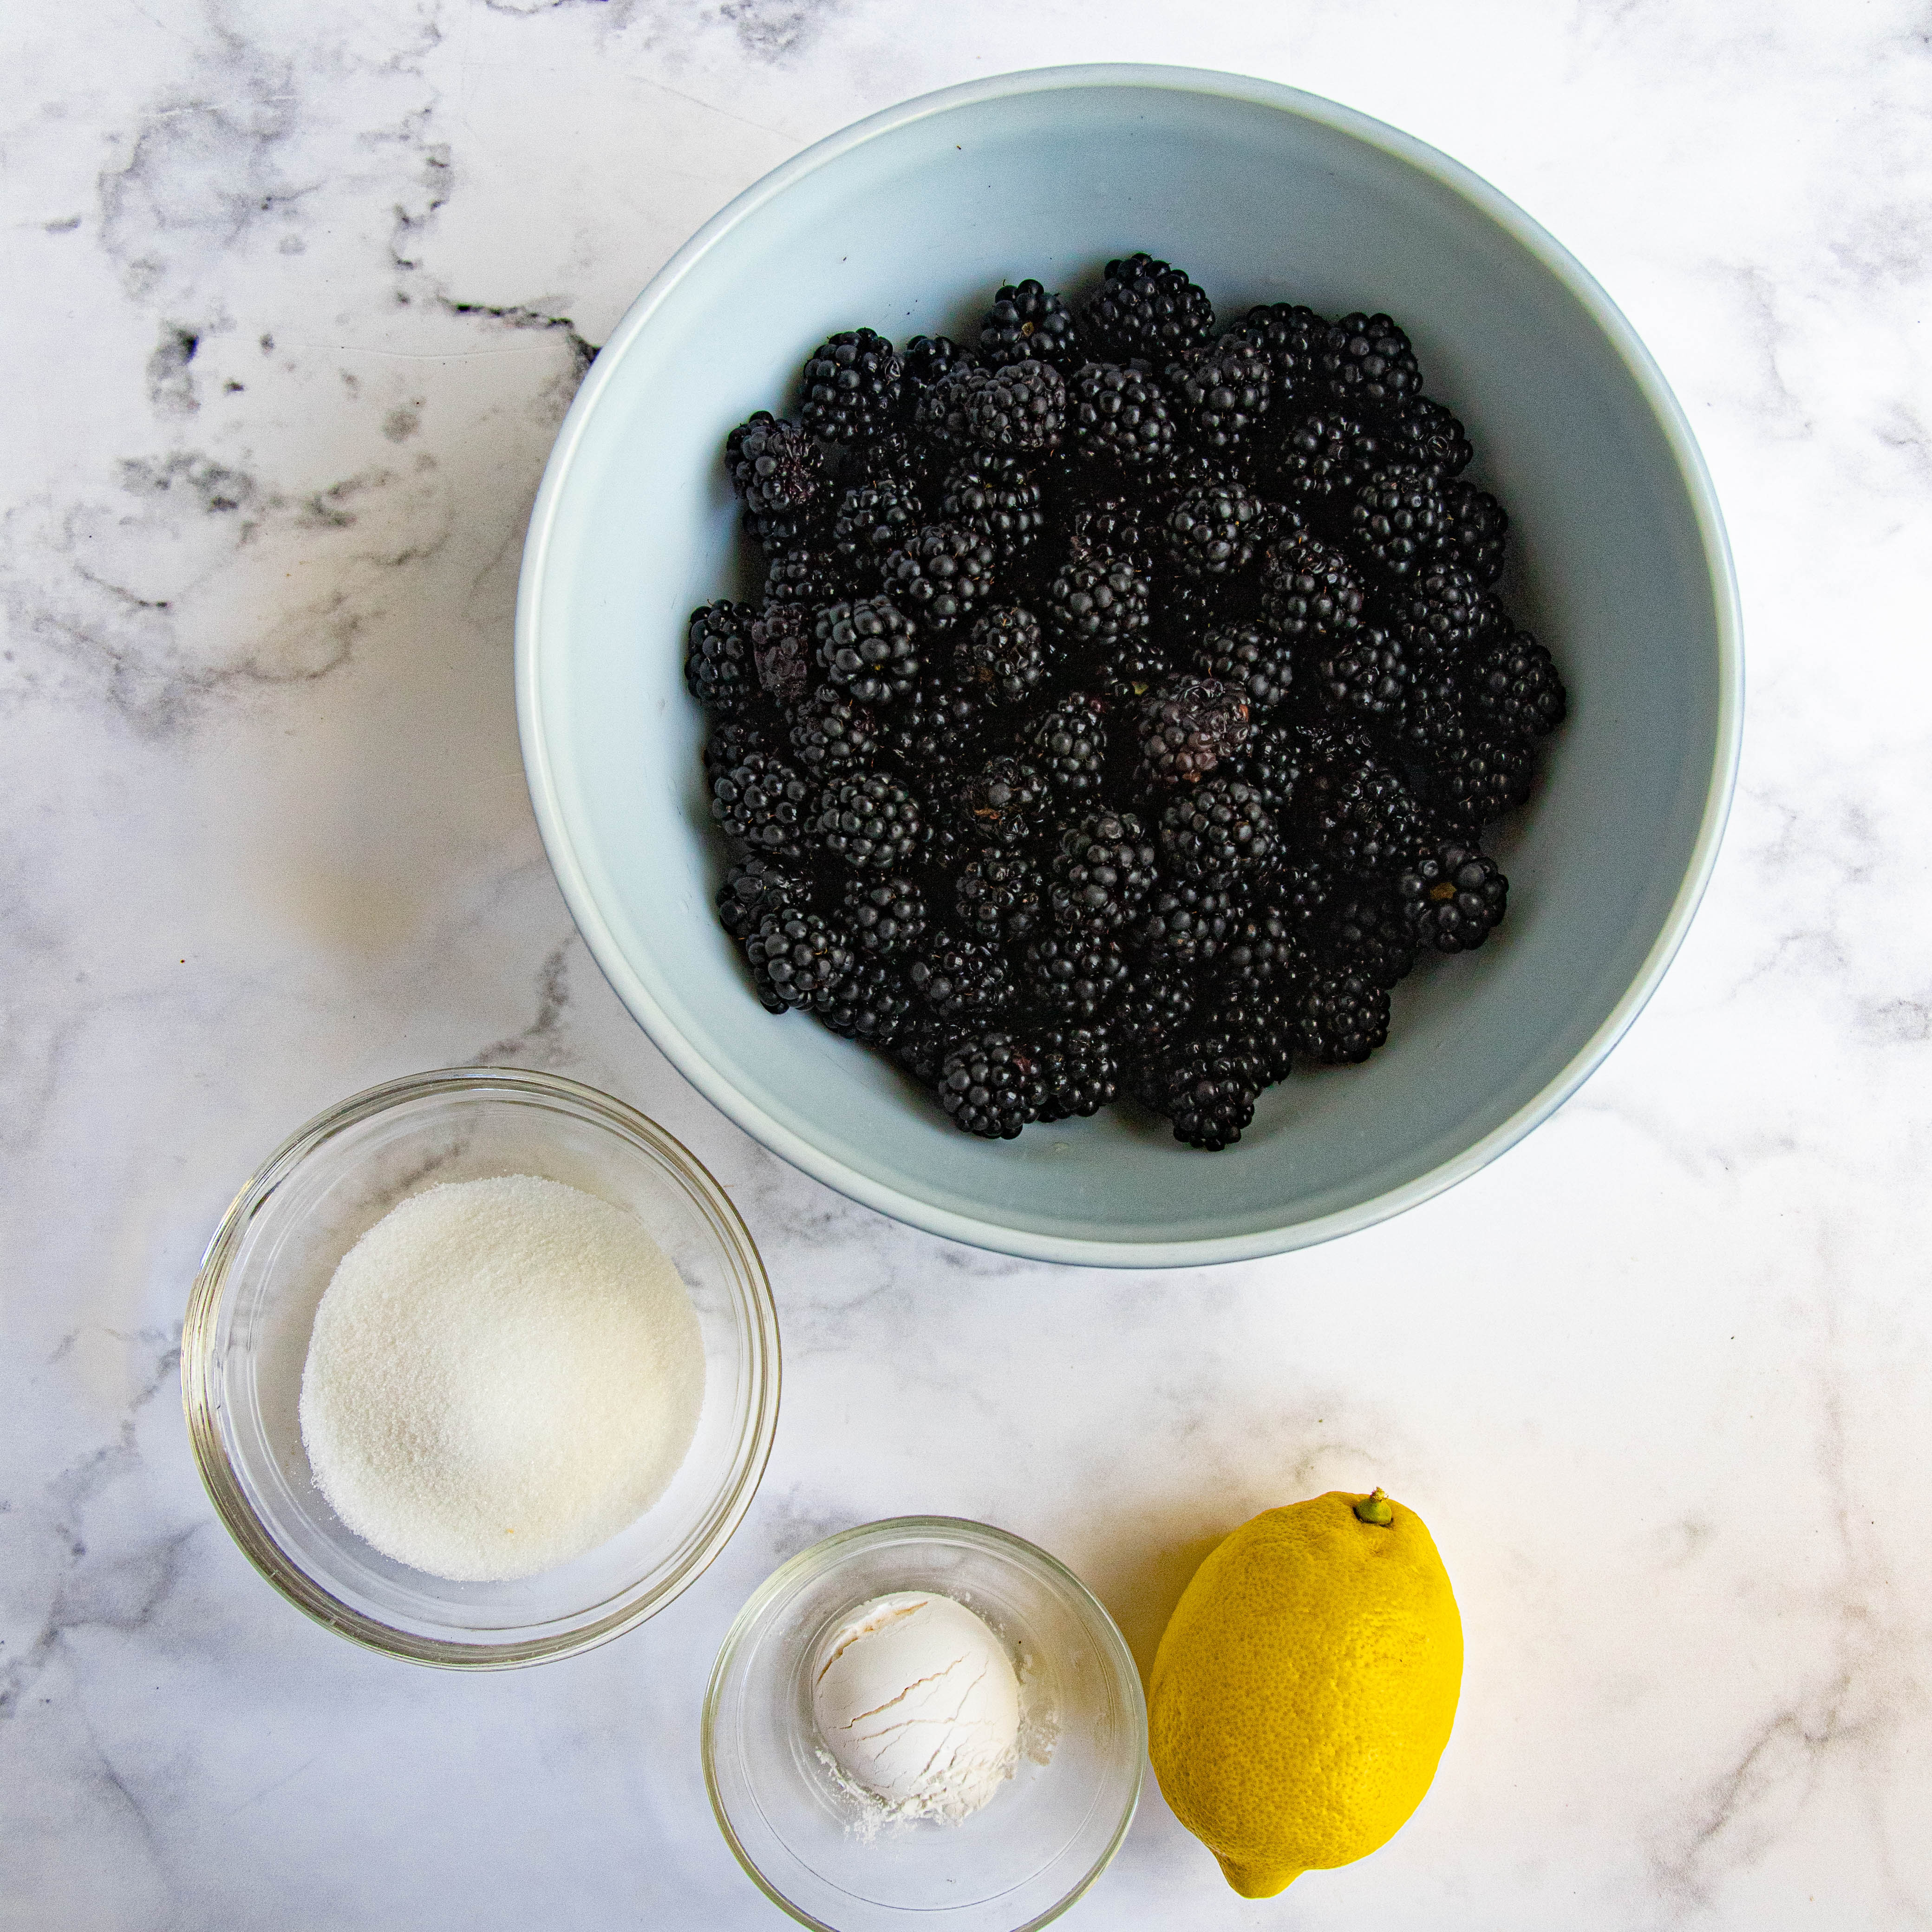 Blackberry Galette Ingredients